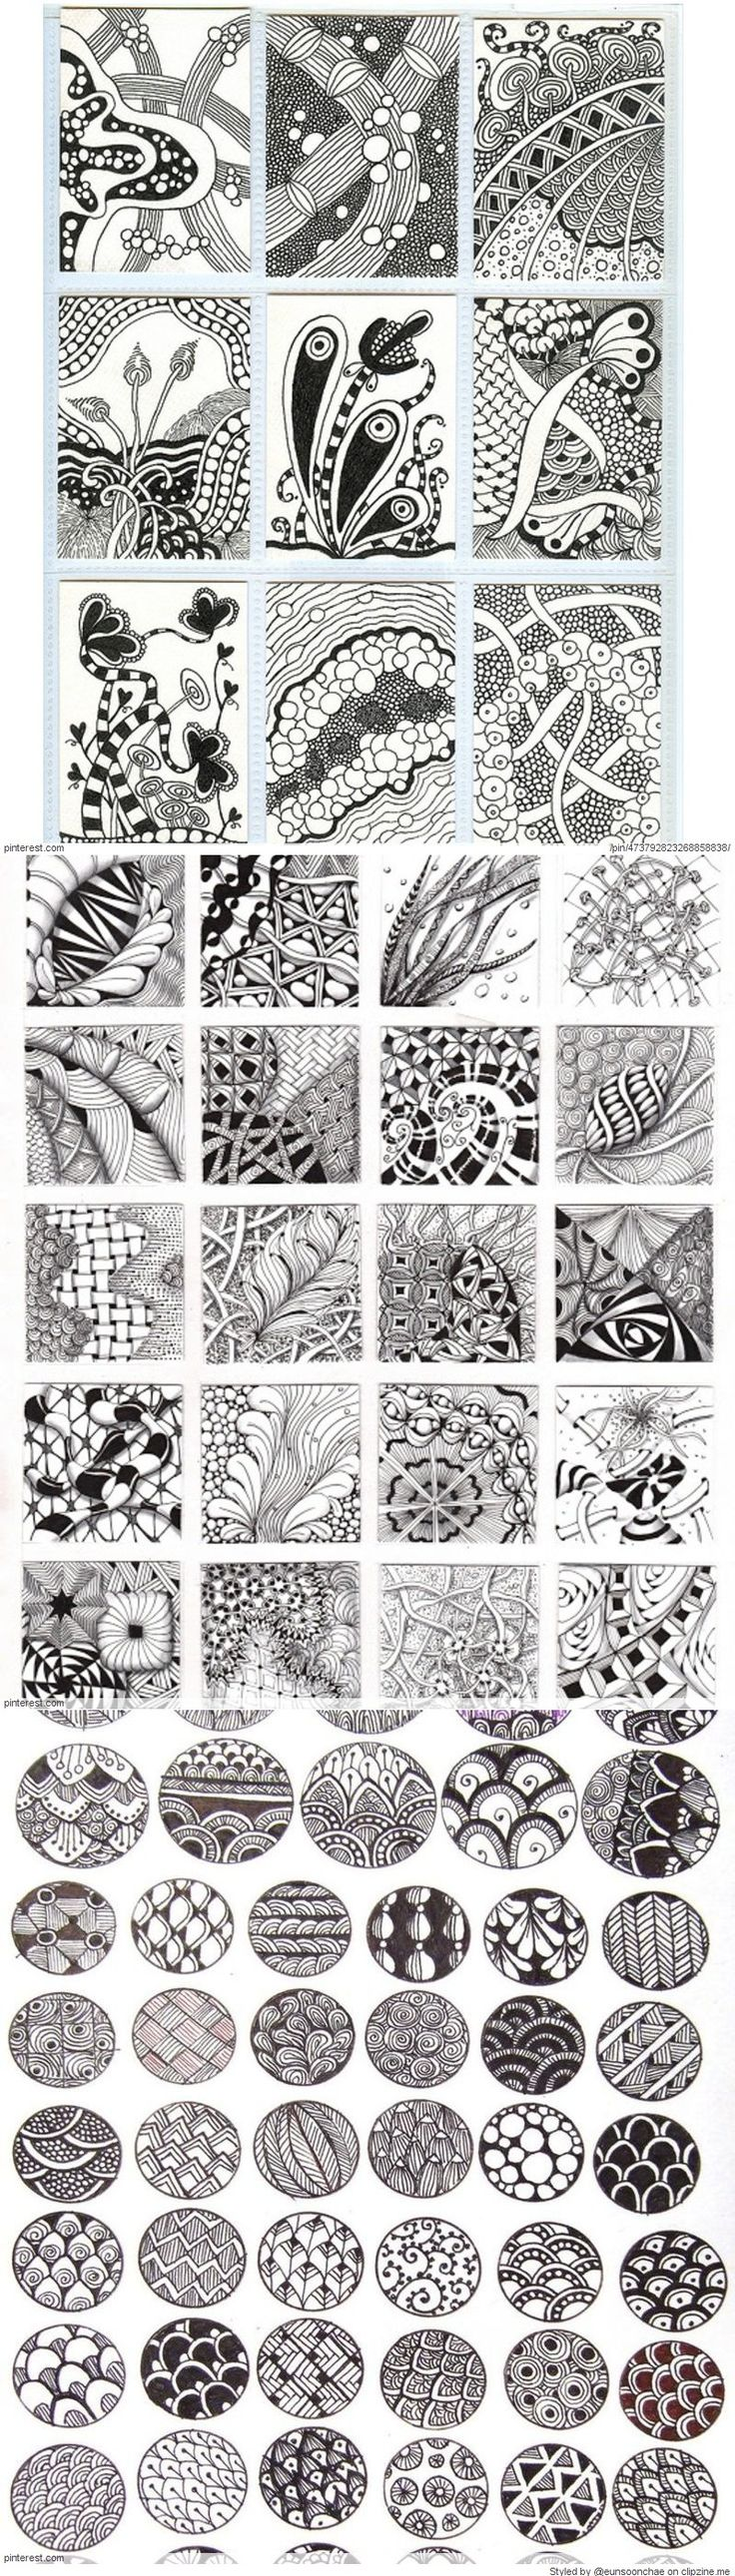 How To Do Line Design Art : Zentangle patterns ideas be careful is naff